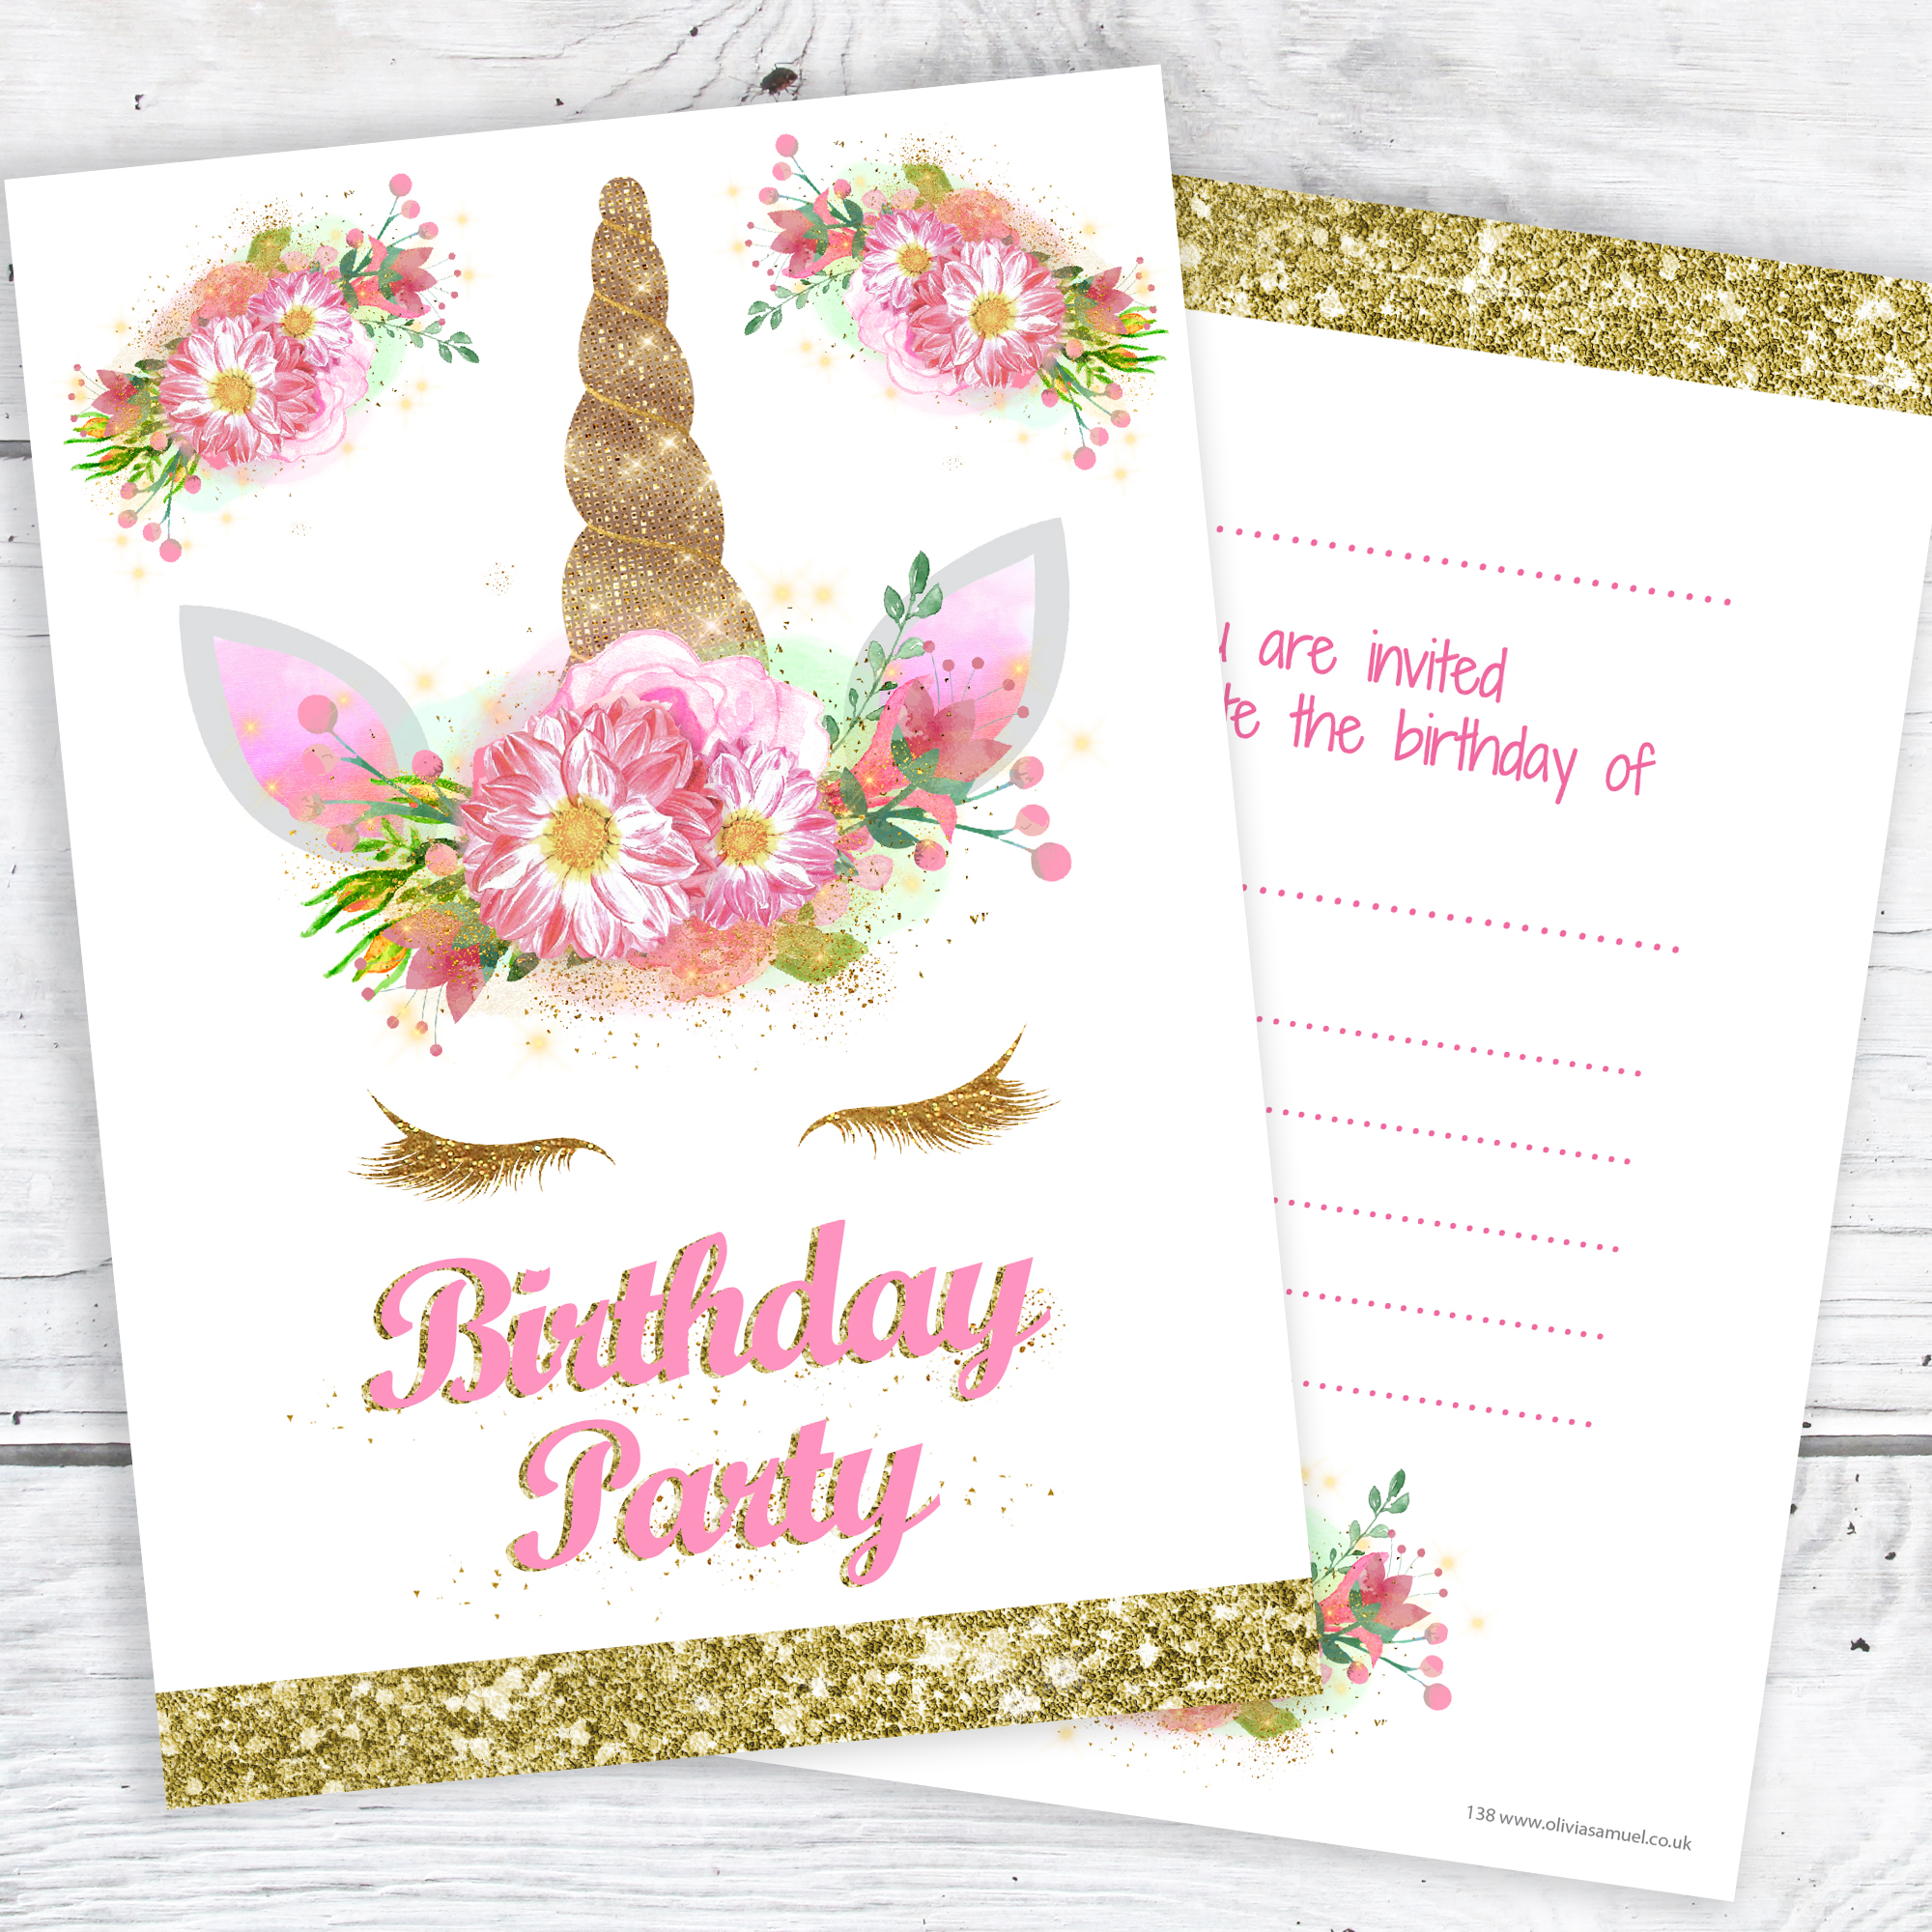 Lummy G Effect Unicorn Birthday Invitations Free Unicorn Birthday Invitations Wording Pink Unicorn Girls Party Invitations Pink Girls Unicorn Birthday Party Invites G invitations Unicorn Birthday Invitations